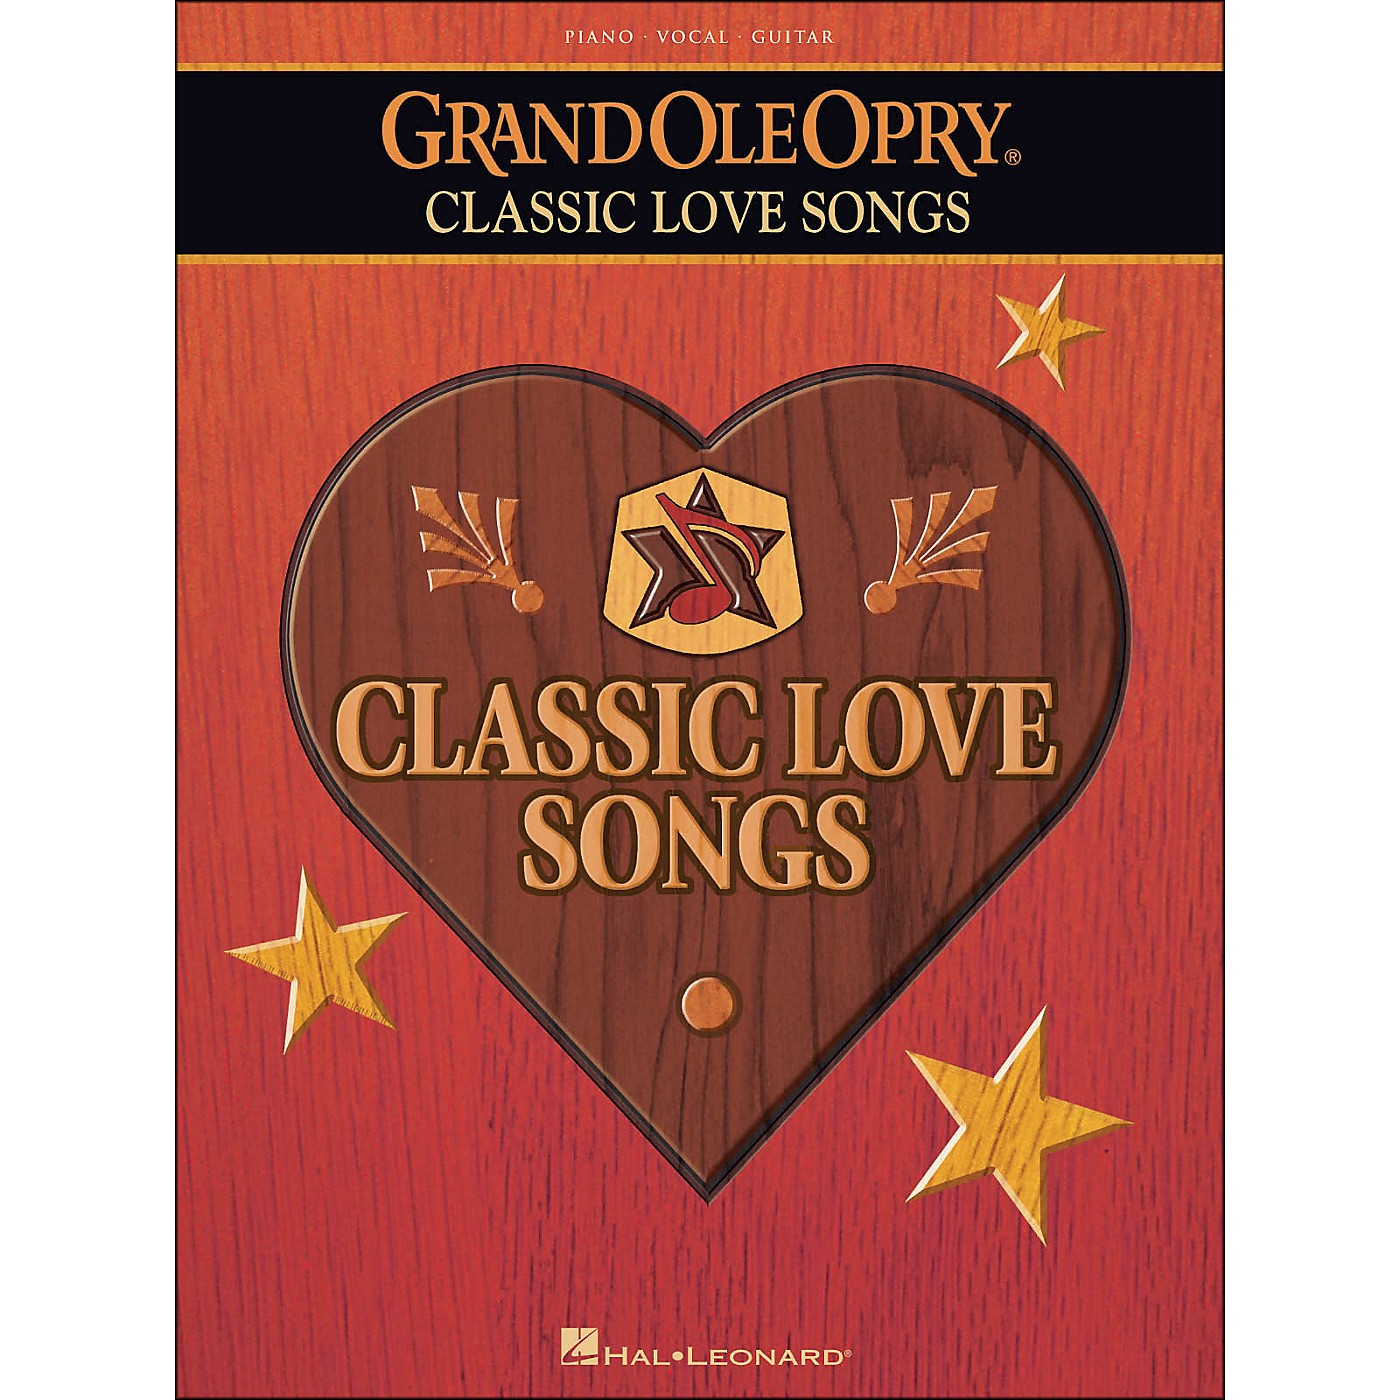 Hal Leonard Grand Ole Opry Classic Love Songs arranged for piano, vocal, and guitar (P/V/G) thumbnail